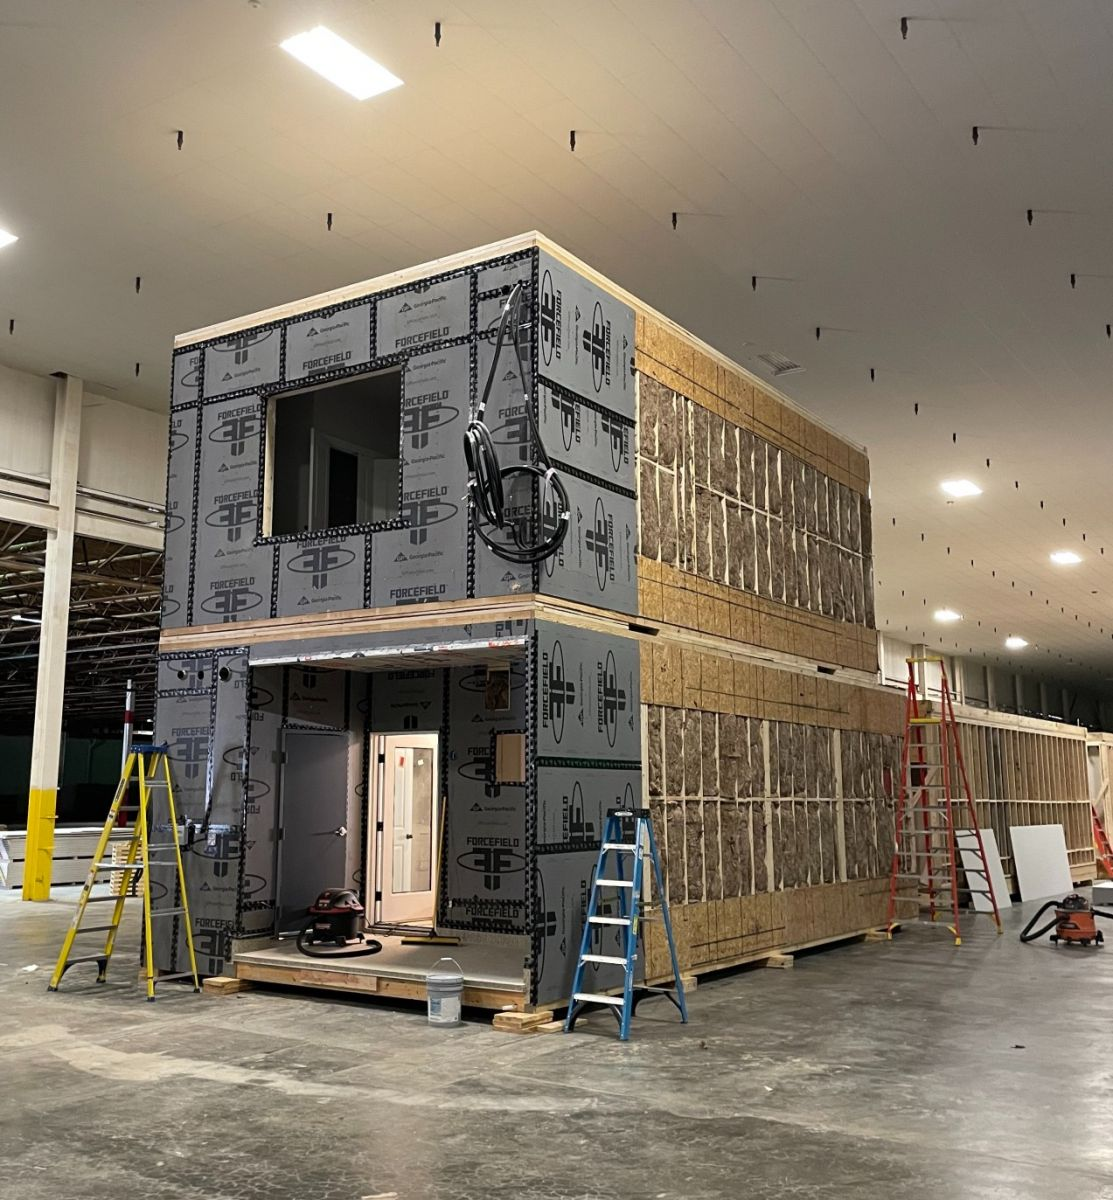 Bmarko has already begun to assemble apartment modules in the Greenville warehouse. (Photo/Provided)